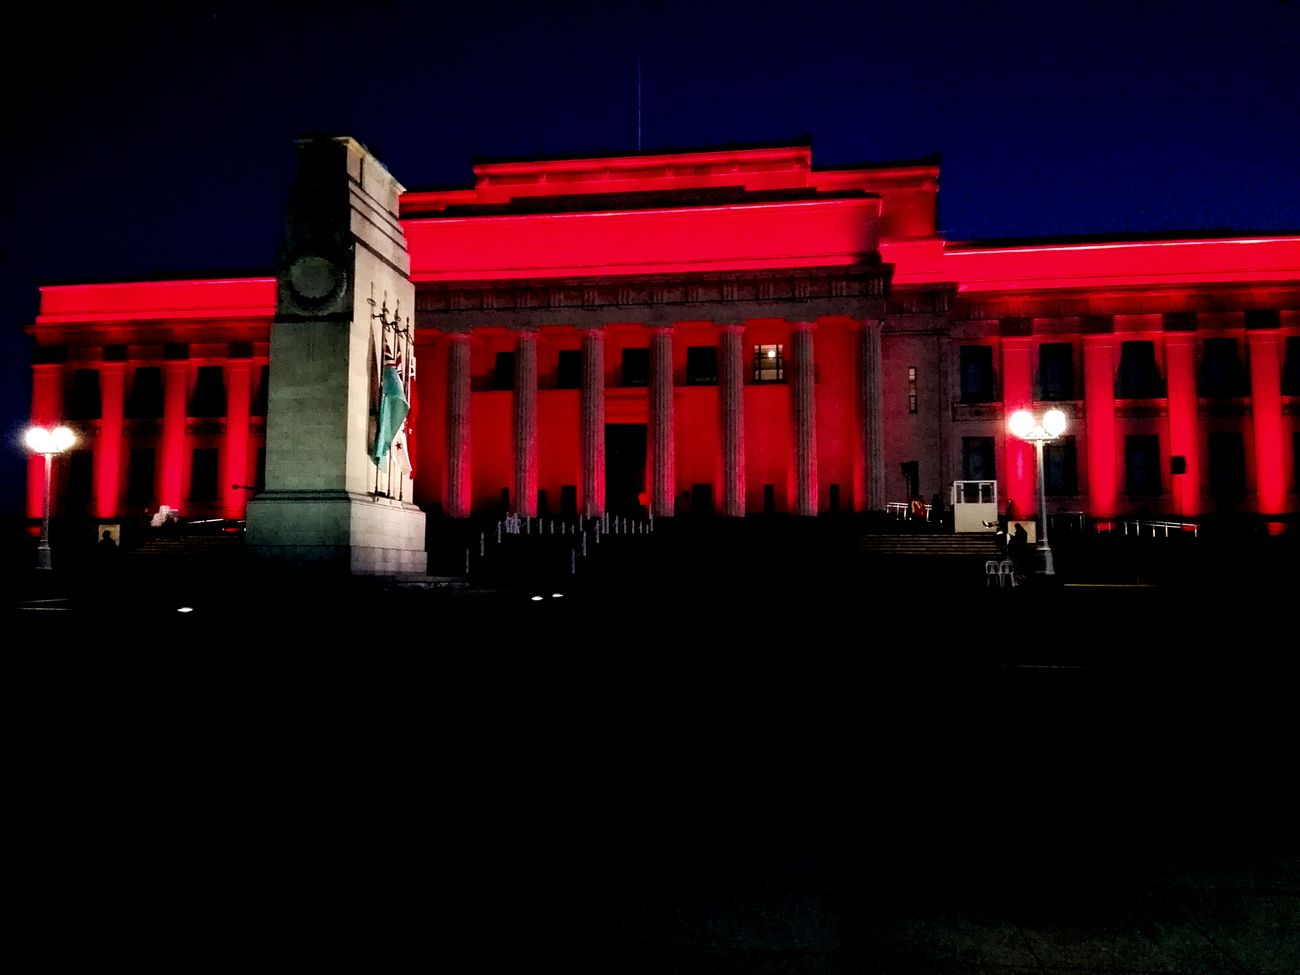 War memorial museum. Anzac Day Night Architecture Lestweforget Red Architecture History Illuminated Architectural Column Museum Built Structure Building Exterior No People